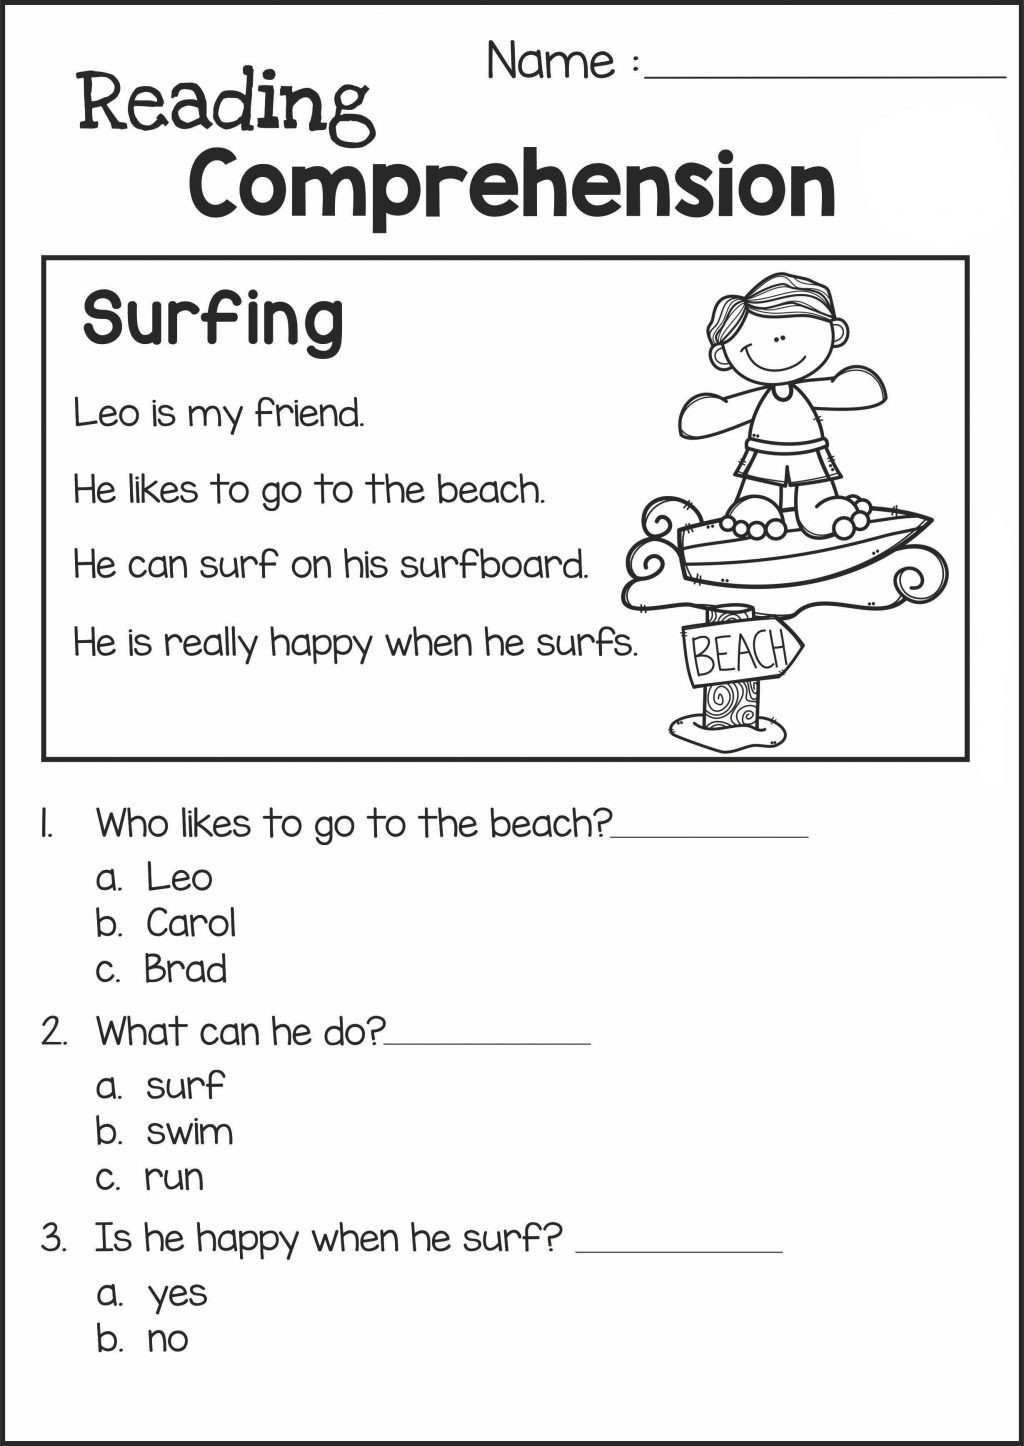 Second Grade Reading Worksheets Worksheet 2nd Gradeeracy Worksheets Ideas Worksheet